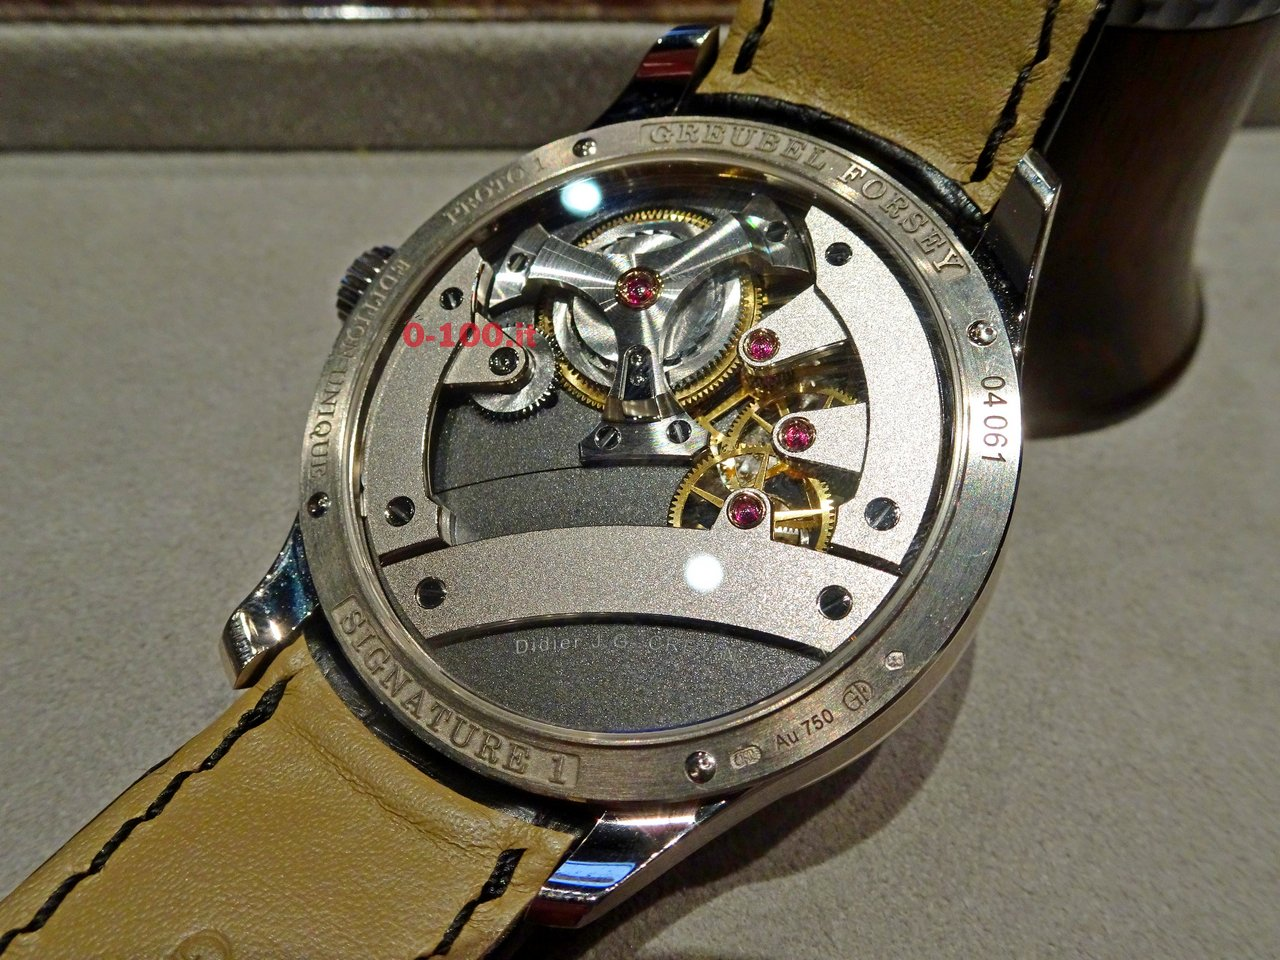 greubel-forsey-sihh-2016-0-100_13